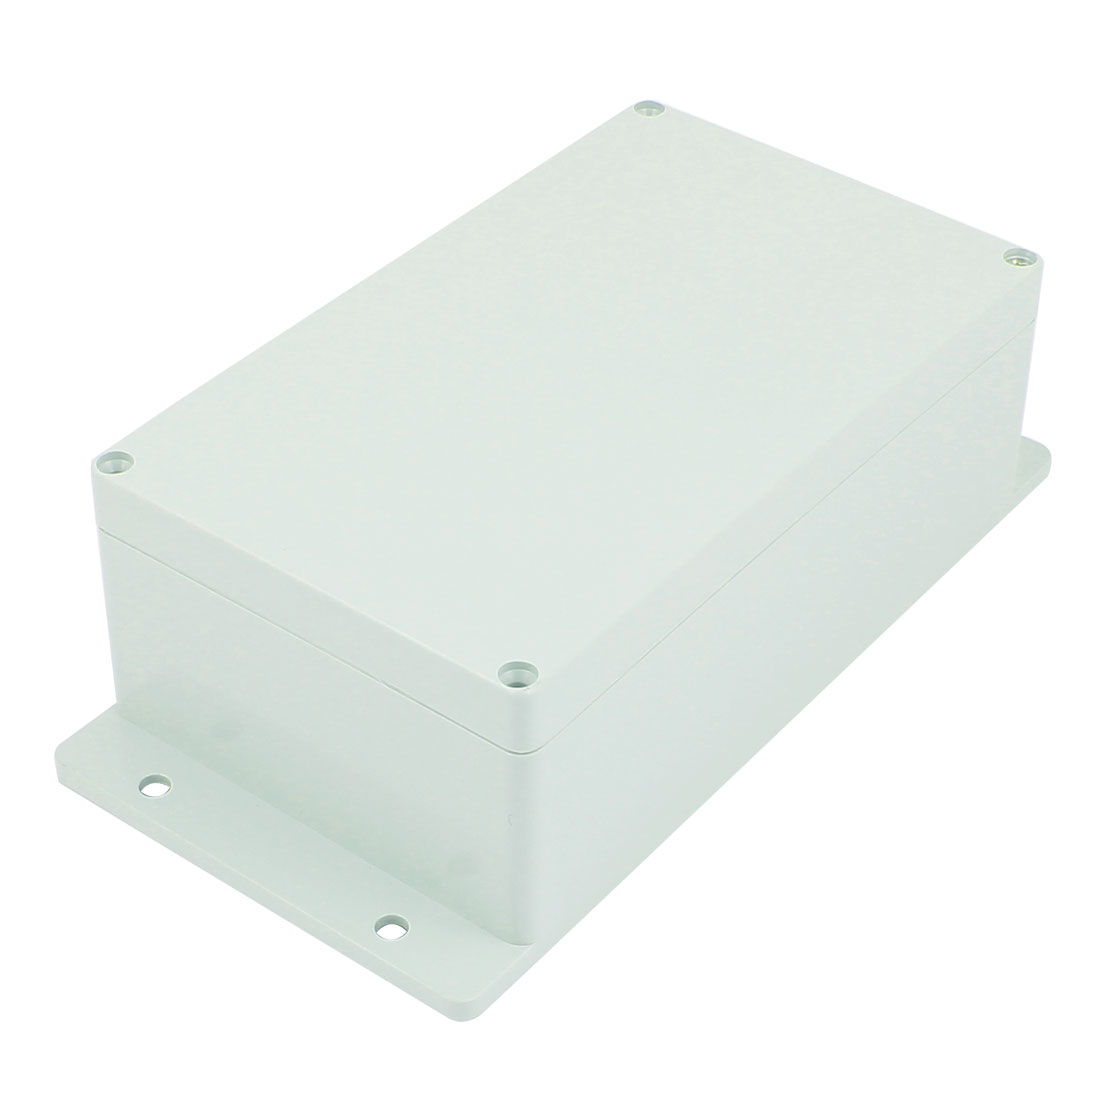 Dustproof IP65 Junction Box DIY Terminal Connect Enclosure Adaptable 192mm x 112mm x 67mm